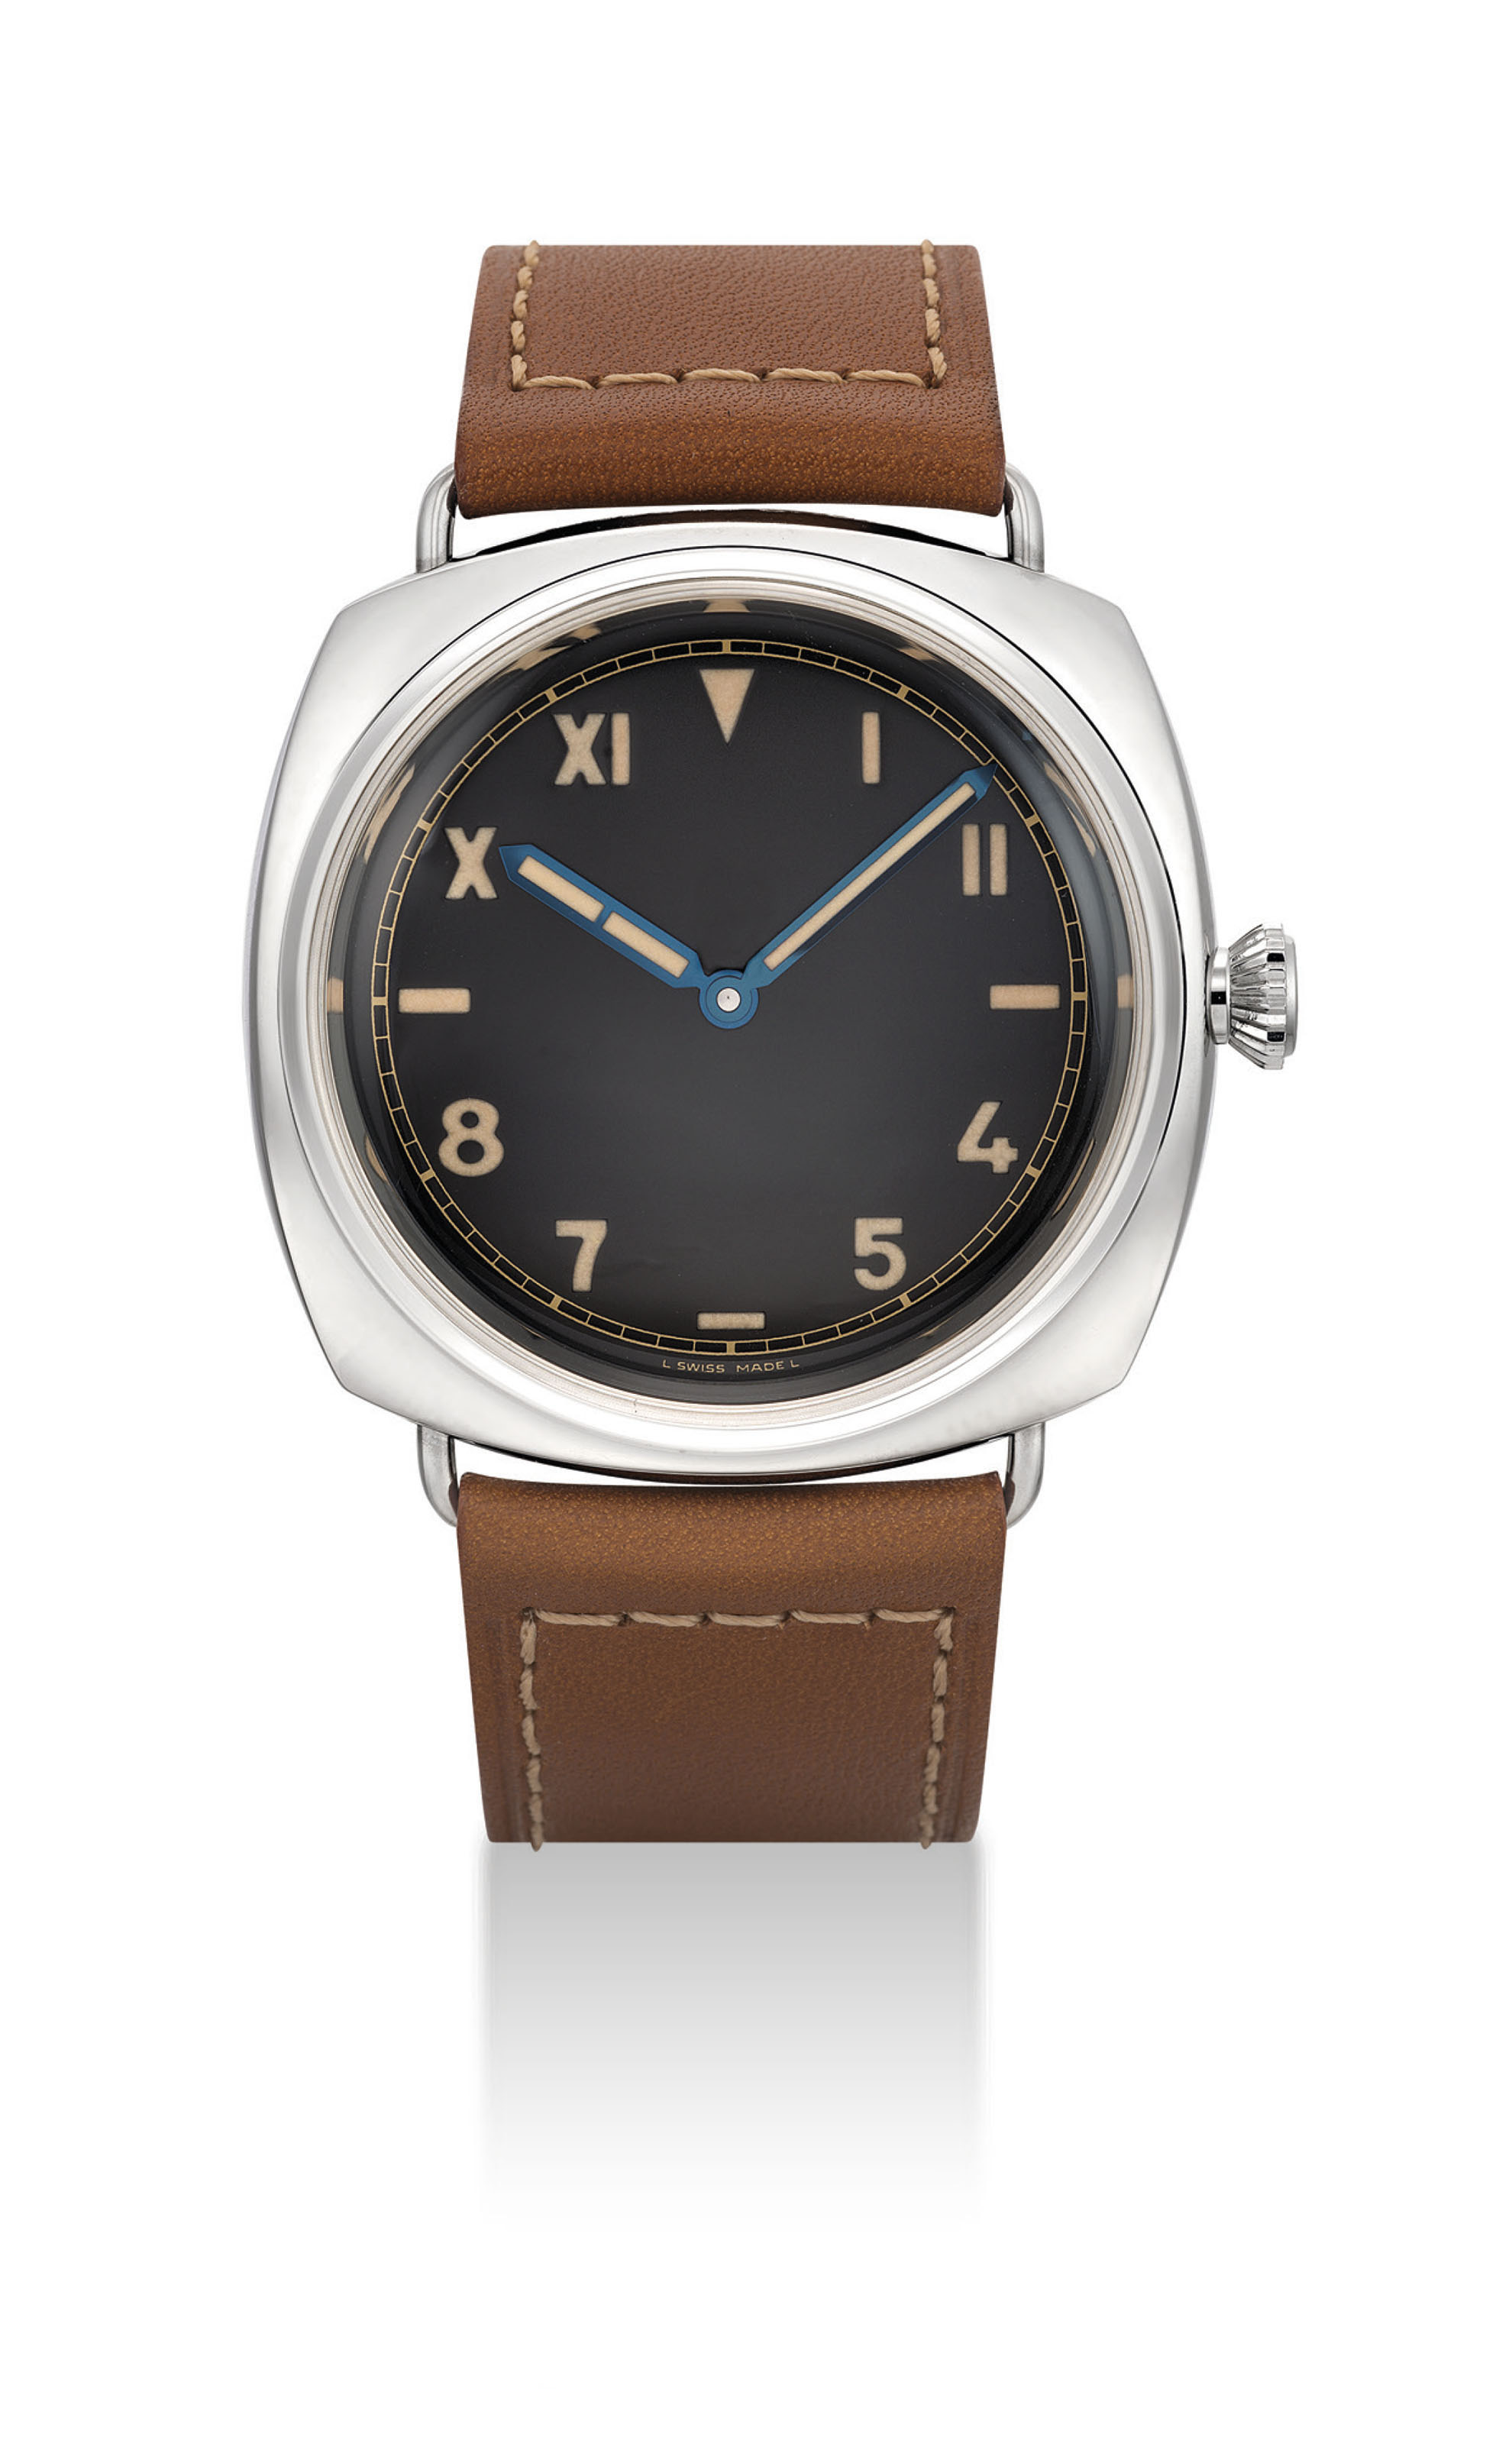 PANERAI. A STAINLESS STEEL SPE